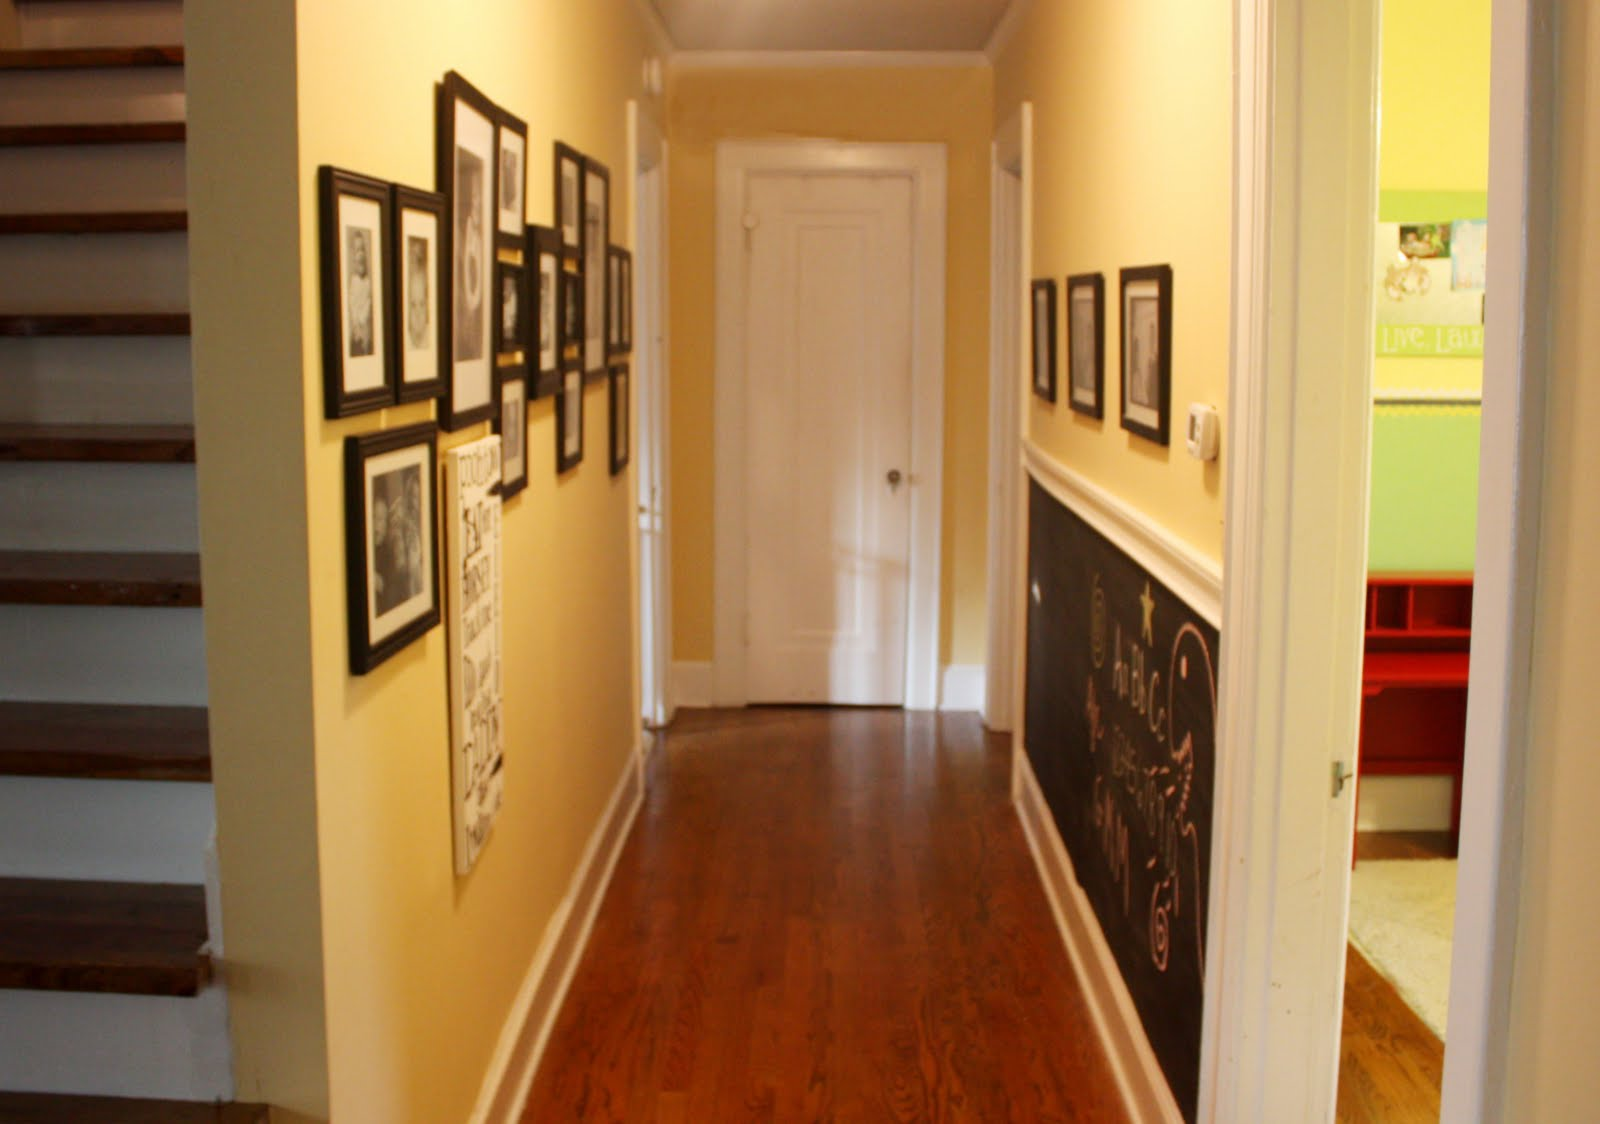 Feng Shui Bedroom Art Hallway Ideas Decorating Quotes Quotesgram